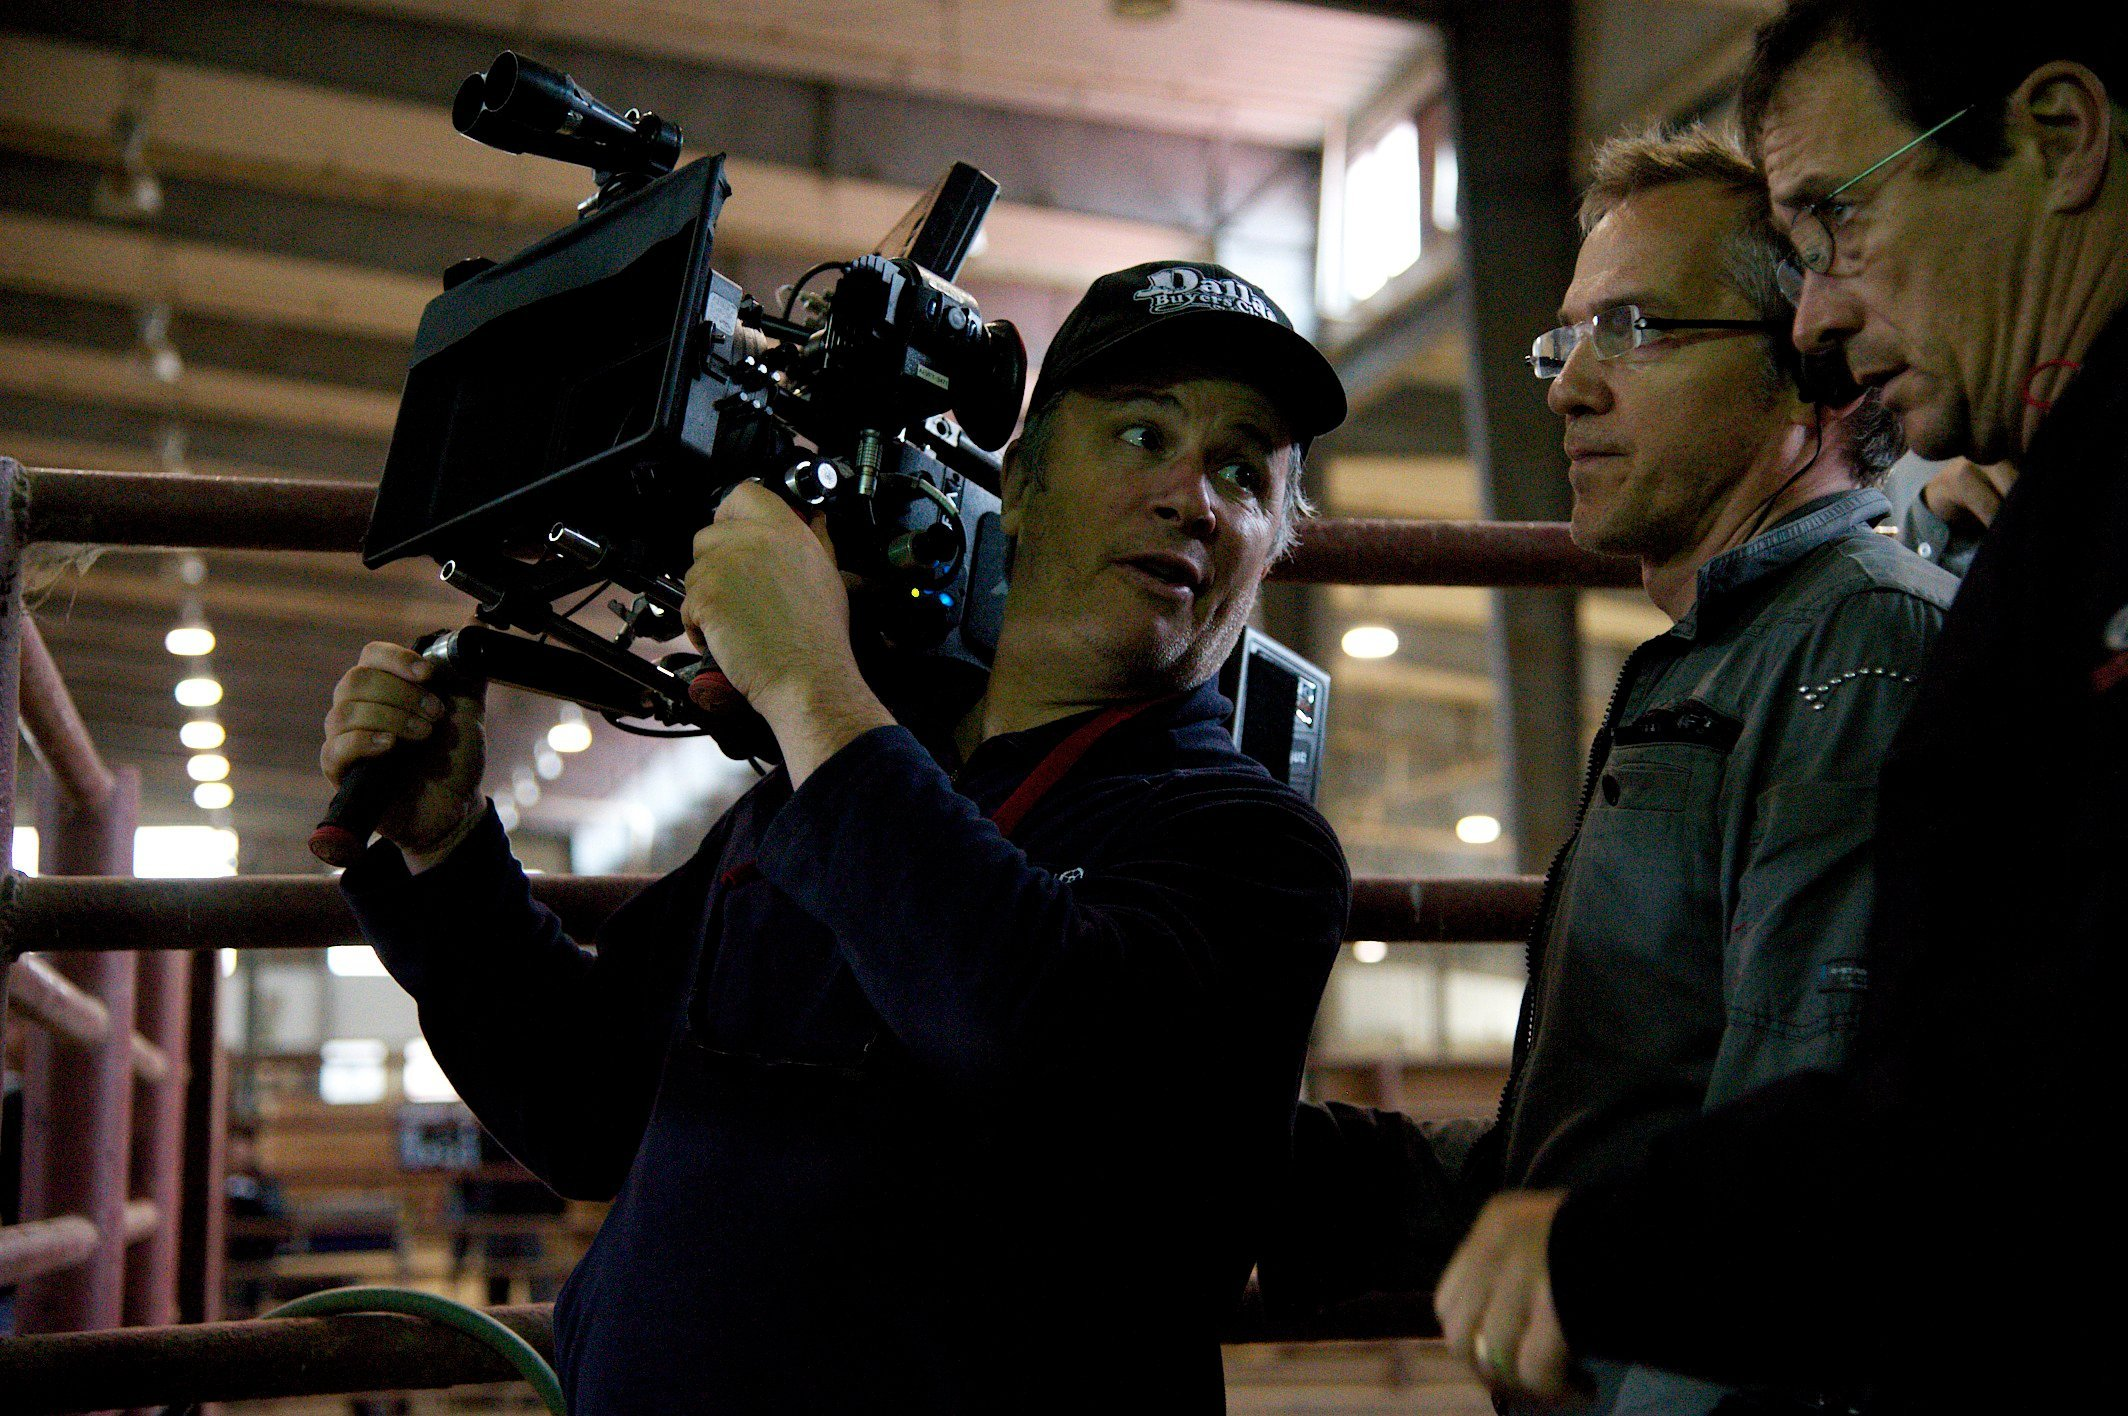 DP Yves Belanger - Director Jean-Marc Vallee - 1st AC Nicolas Marion - DALLAS BUYERS CLUB